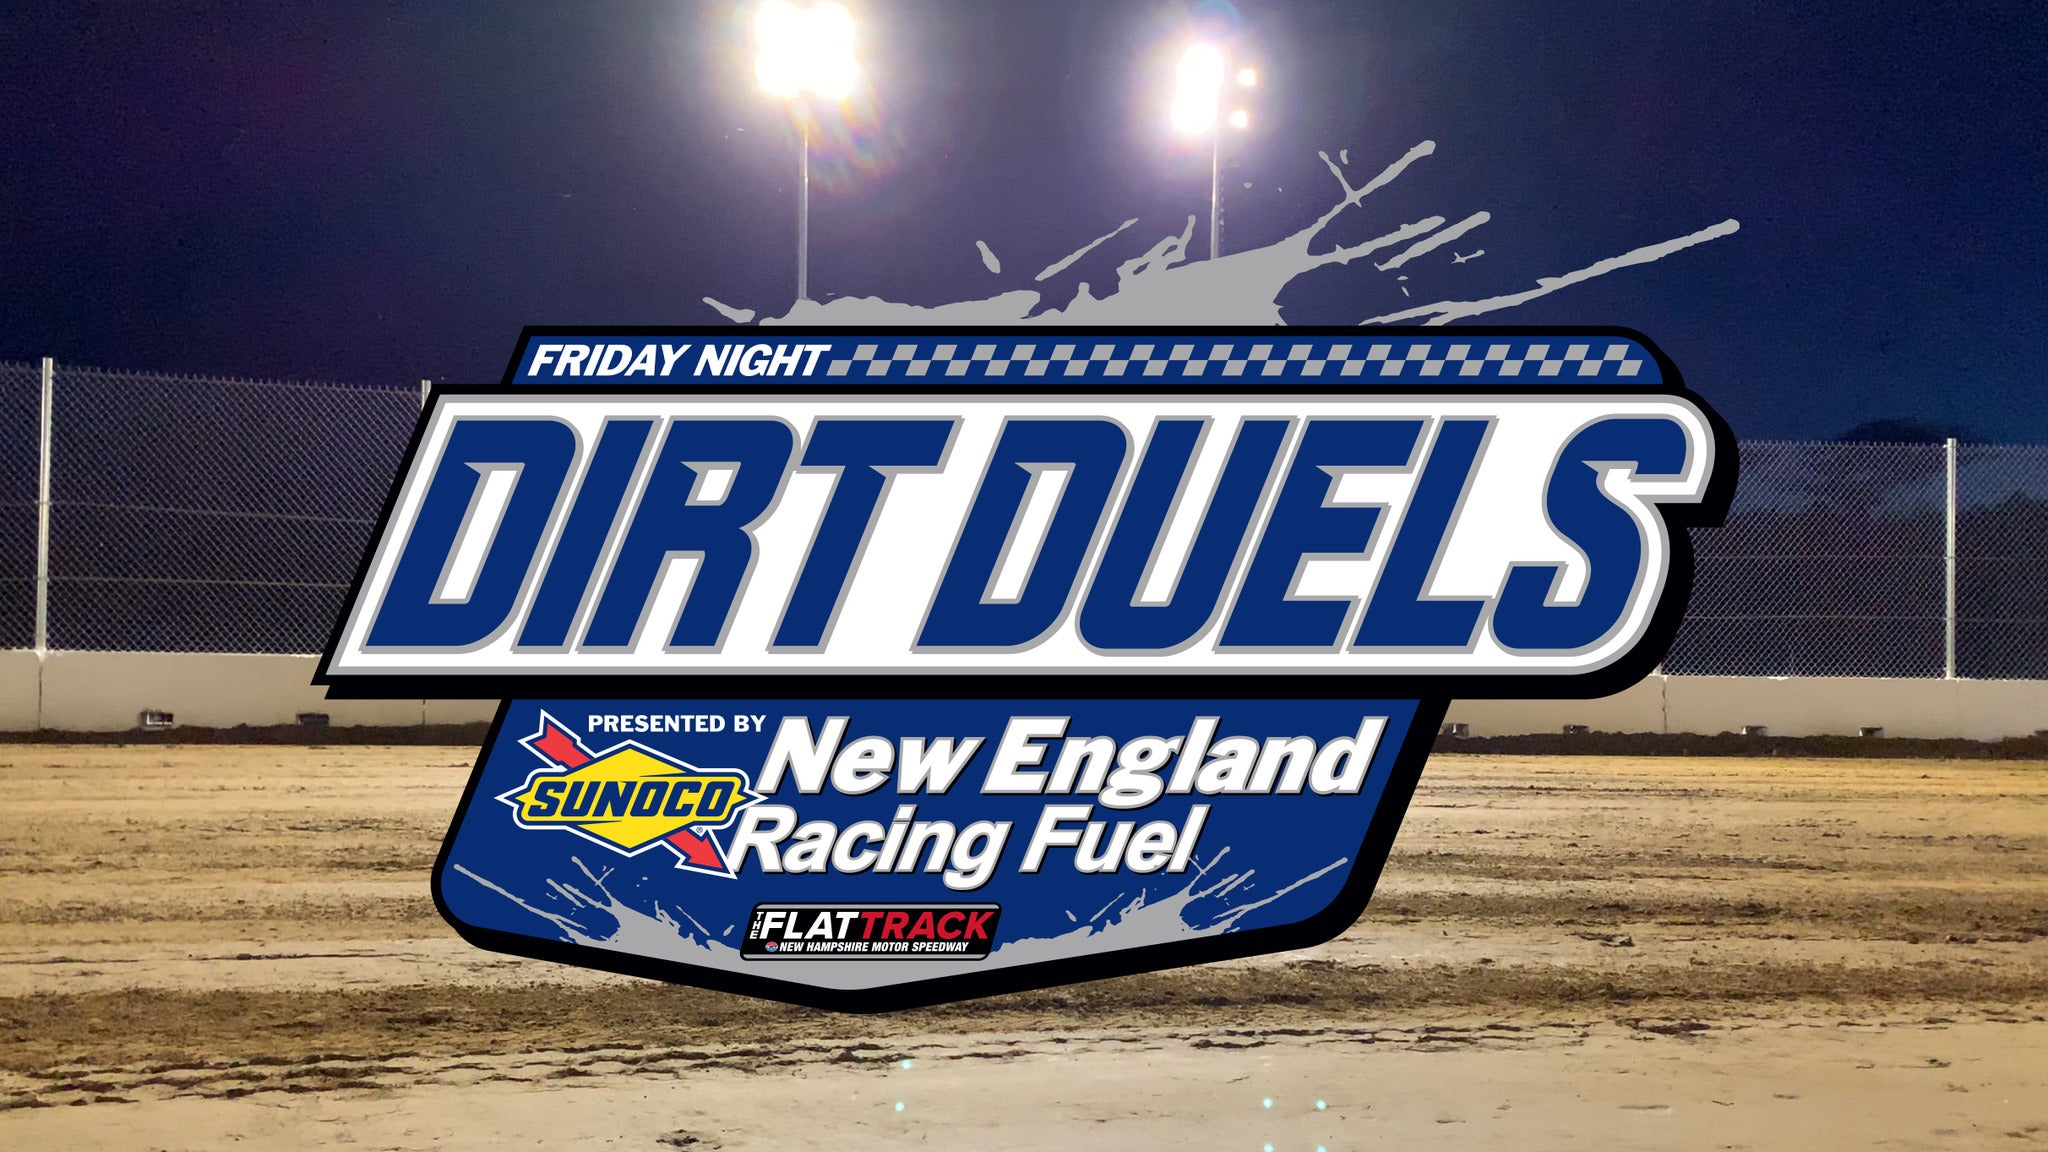 Friday Night Dirt Duels Presented By New England Racing Fuels